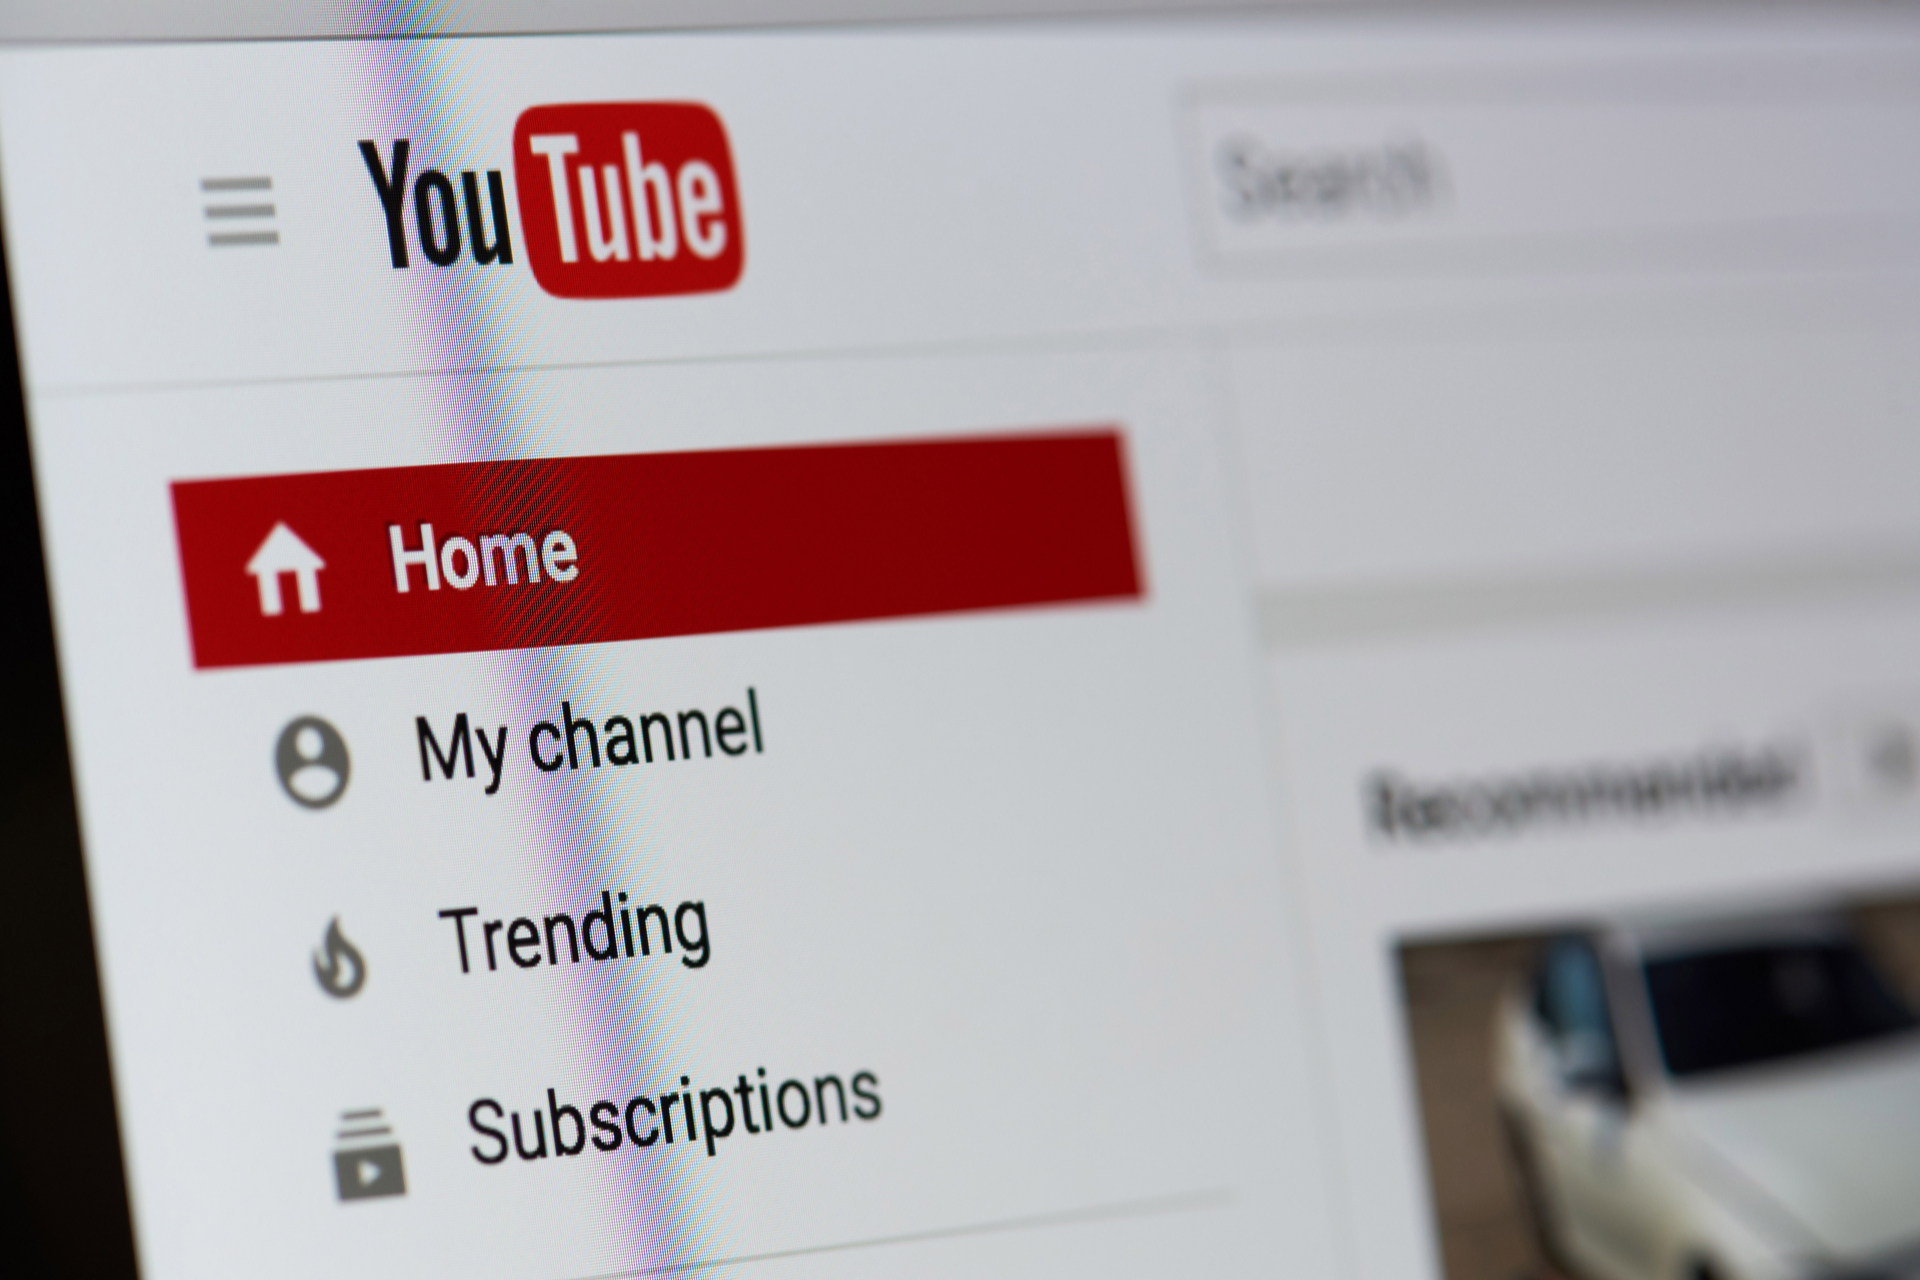 High-profile YouTube accounts hacked in coordinated phishing attack